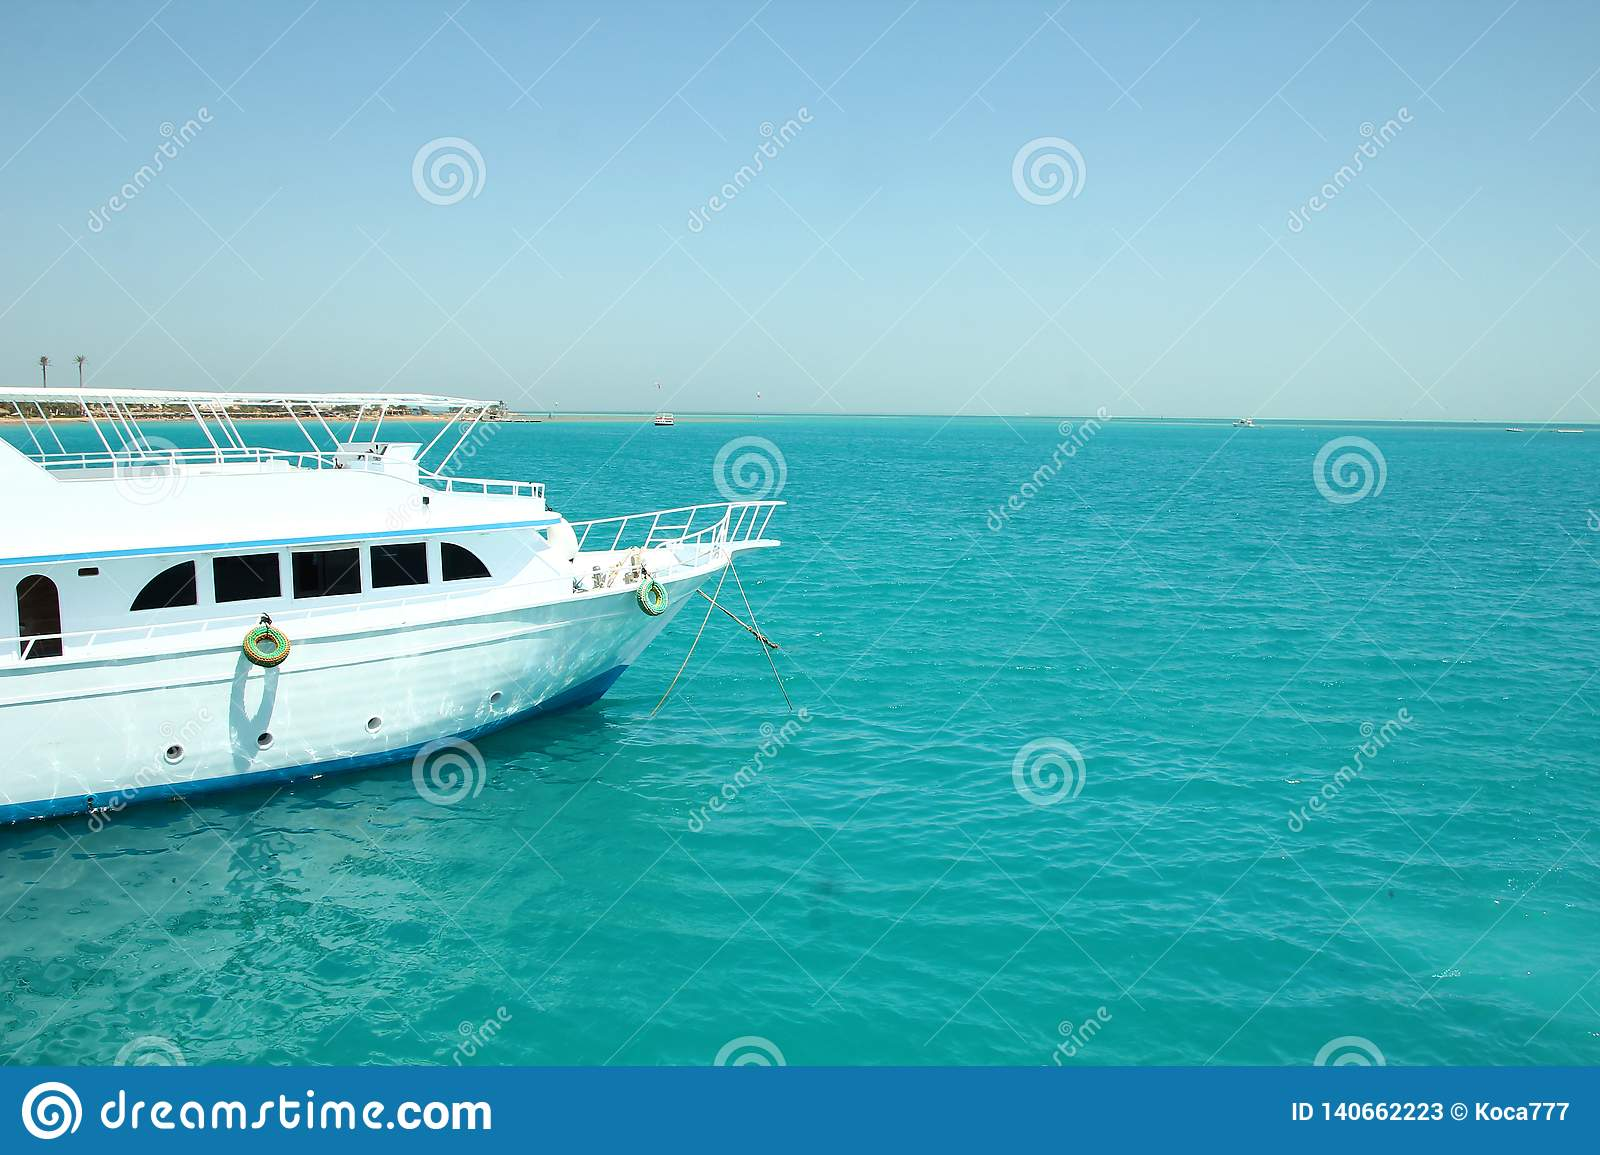 Boat On The Sea Stock Image Image Of Image Computer 140662223